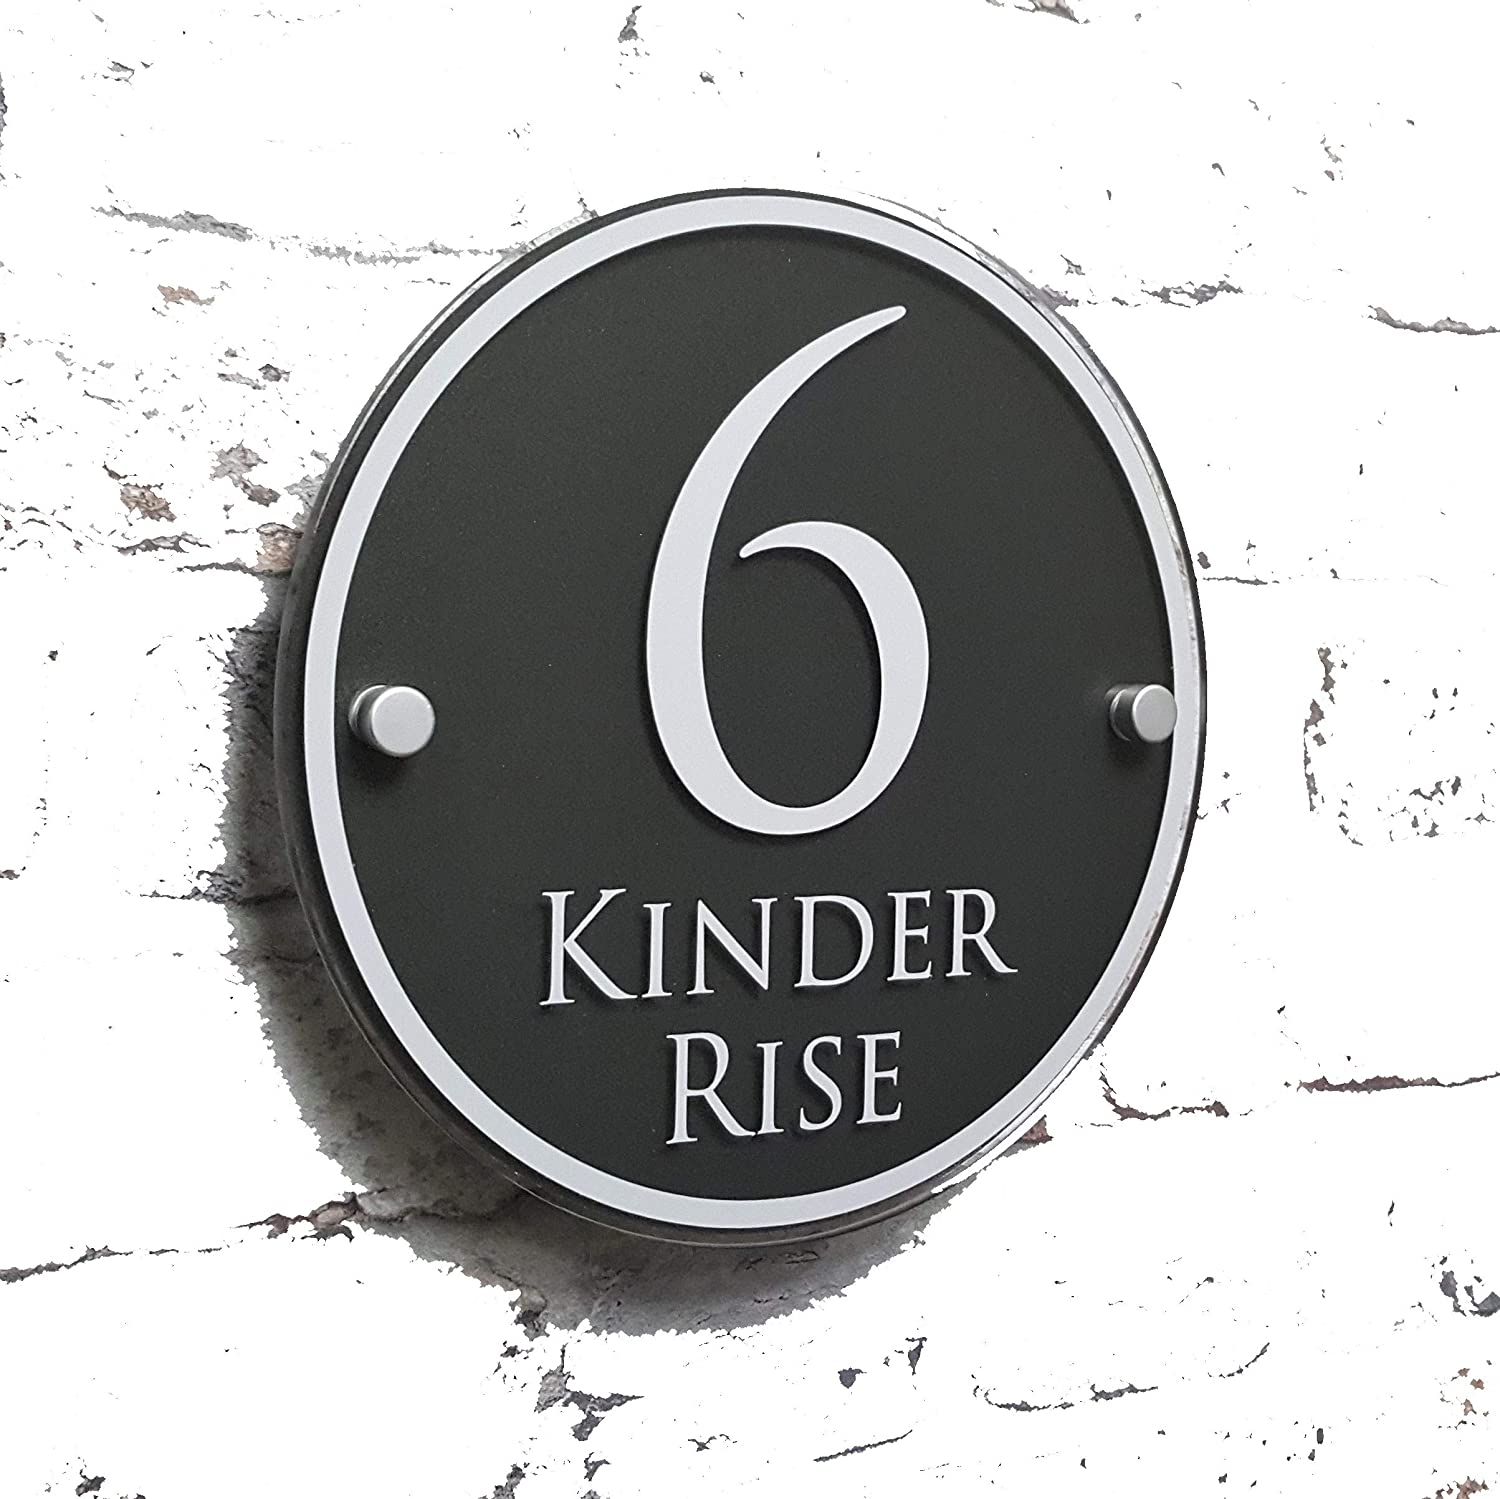 MODERN HOUSE SIGN ADRESS PLAQUE DOOR NUMBER NAME PLATE PERSONALISED GLASS EFFECT 'ROUND' HOUSE SIGN SOLUTIONS